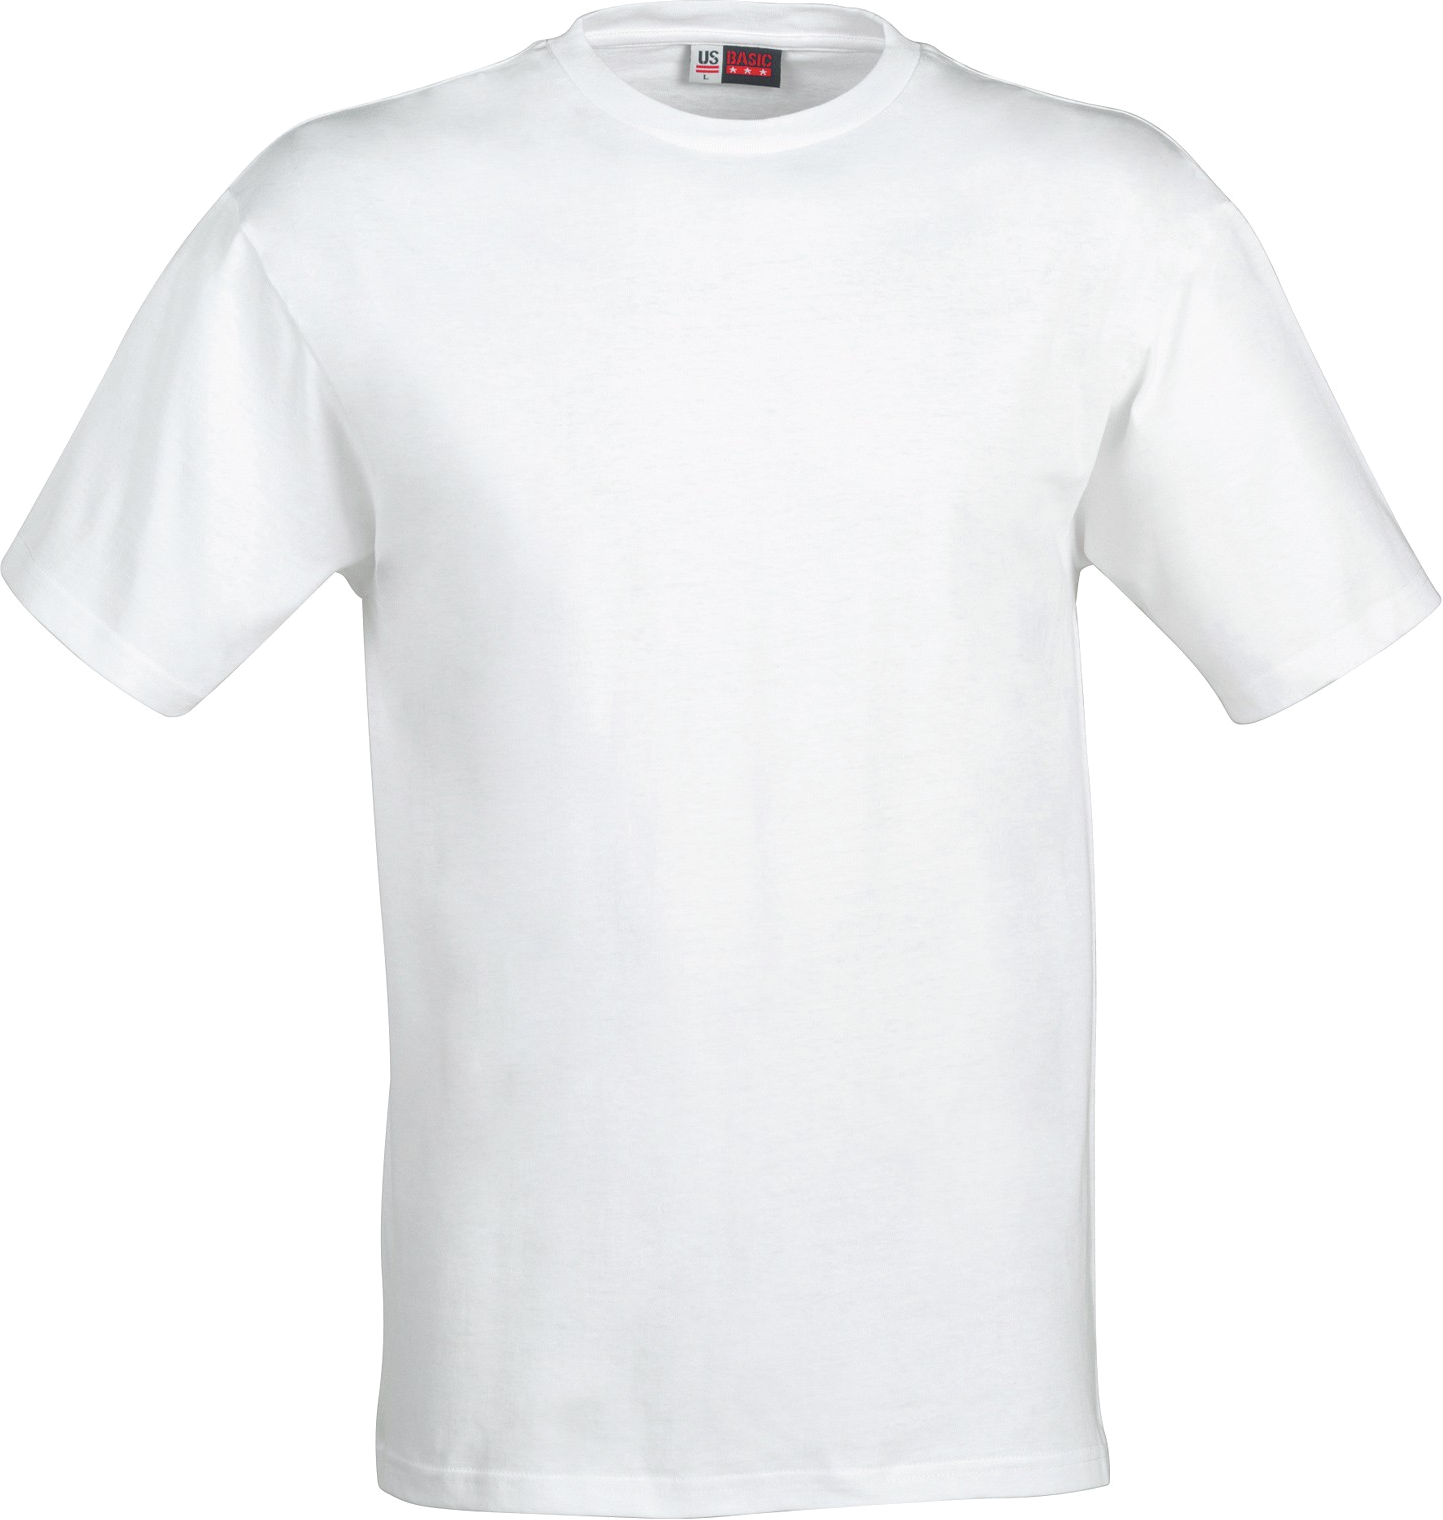 Blank t shirt png. Shirts images free download